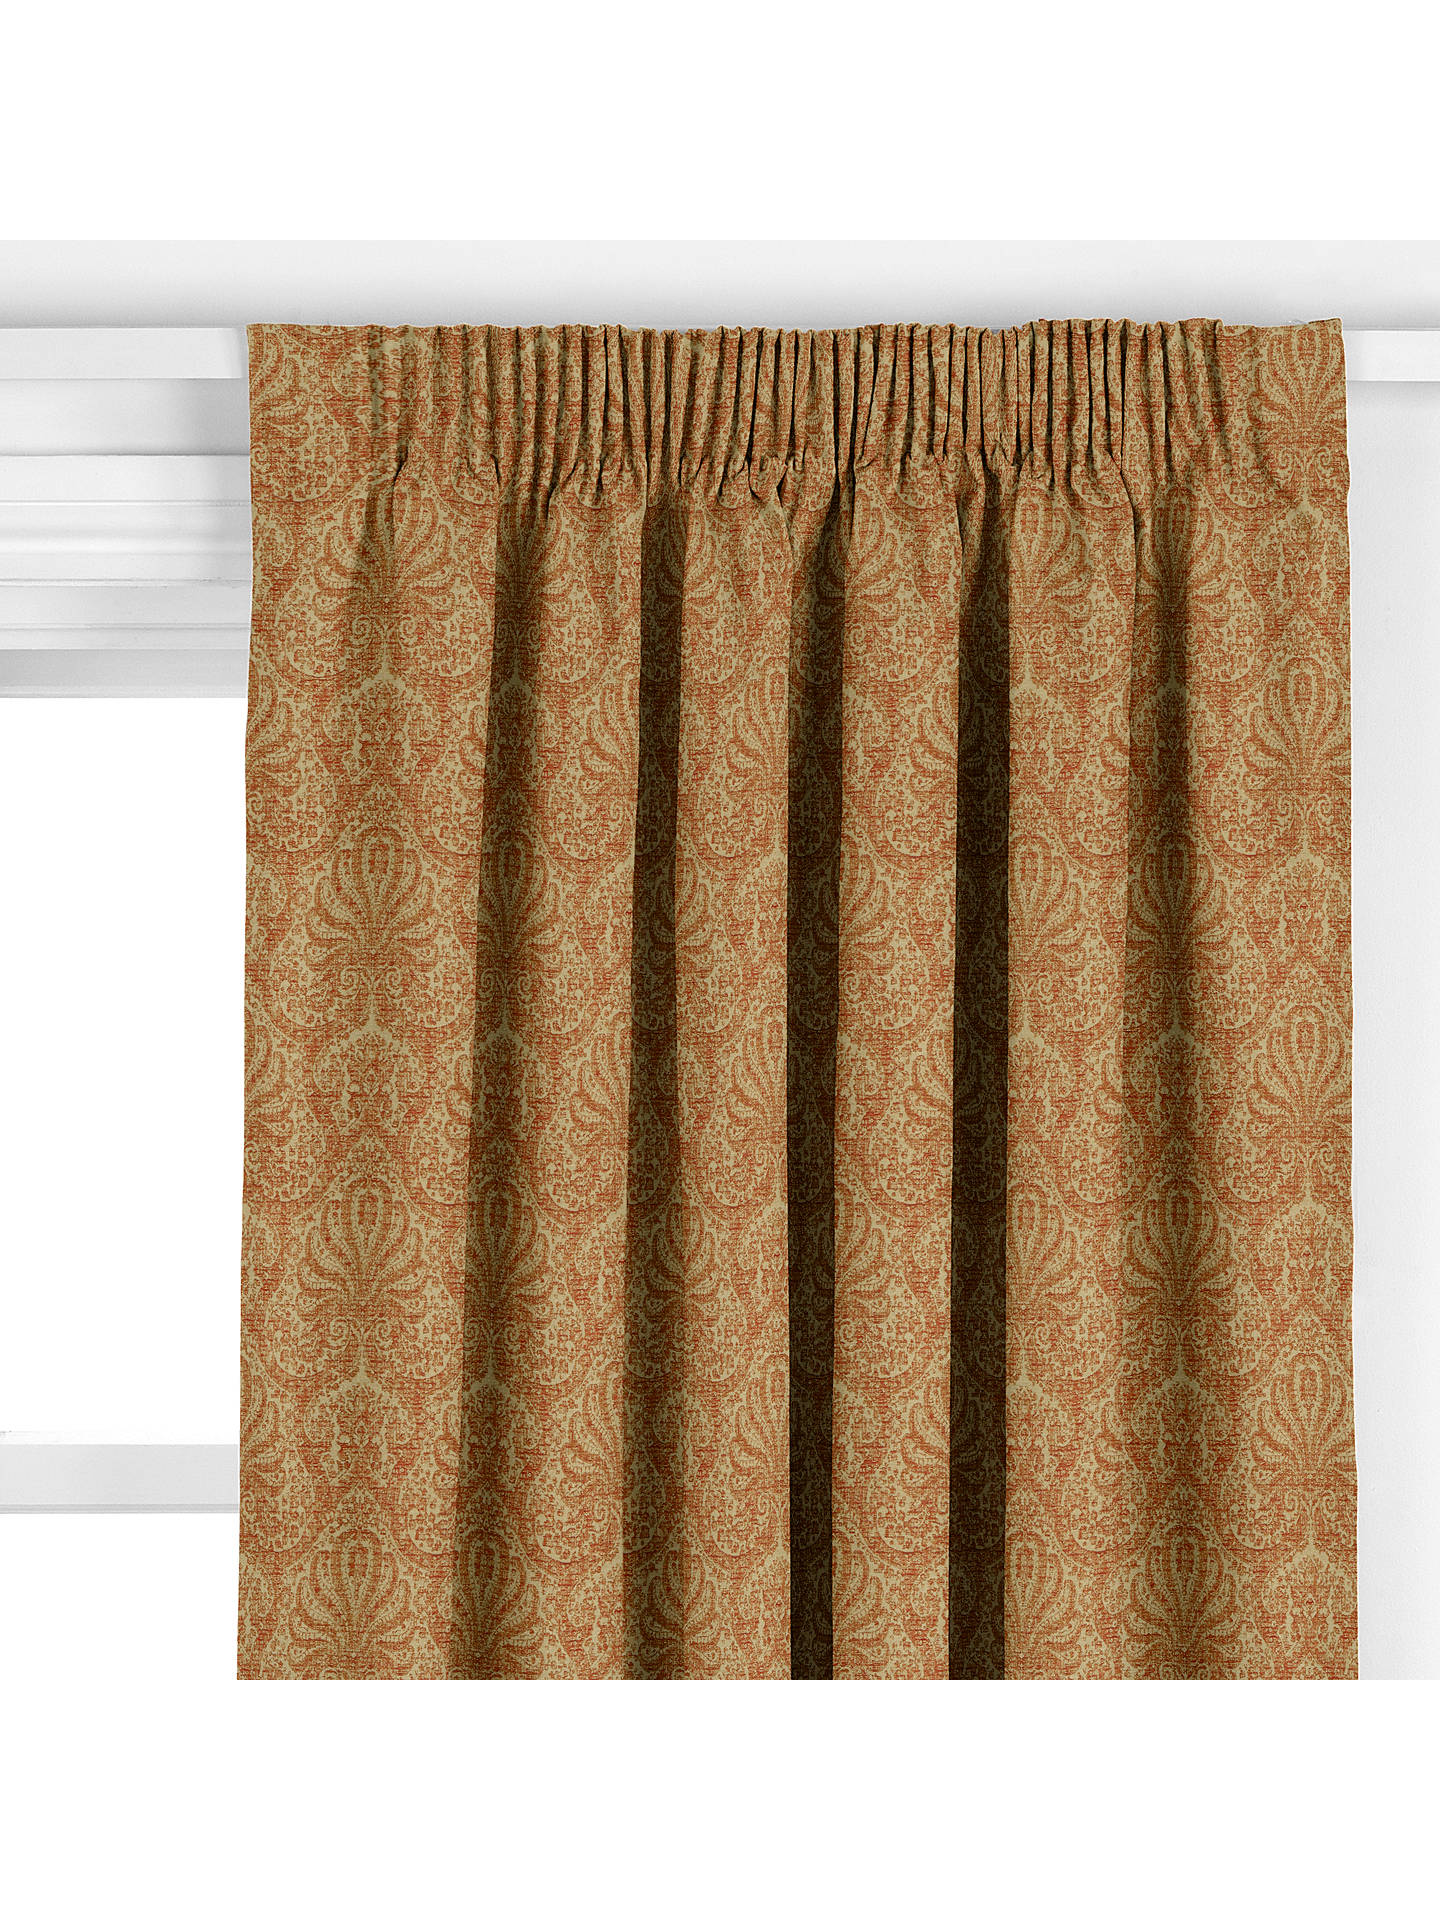 BuyJohn Lewis & Partners Tripoli Damask Curtain, Red Online at johnlewis.com